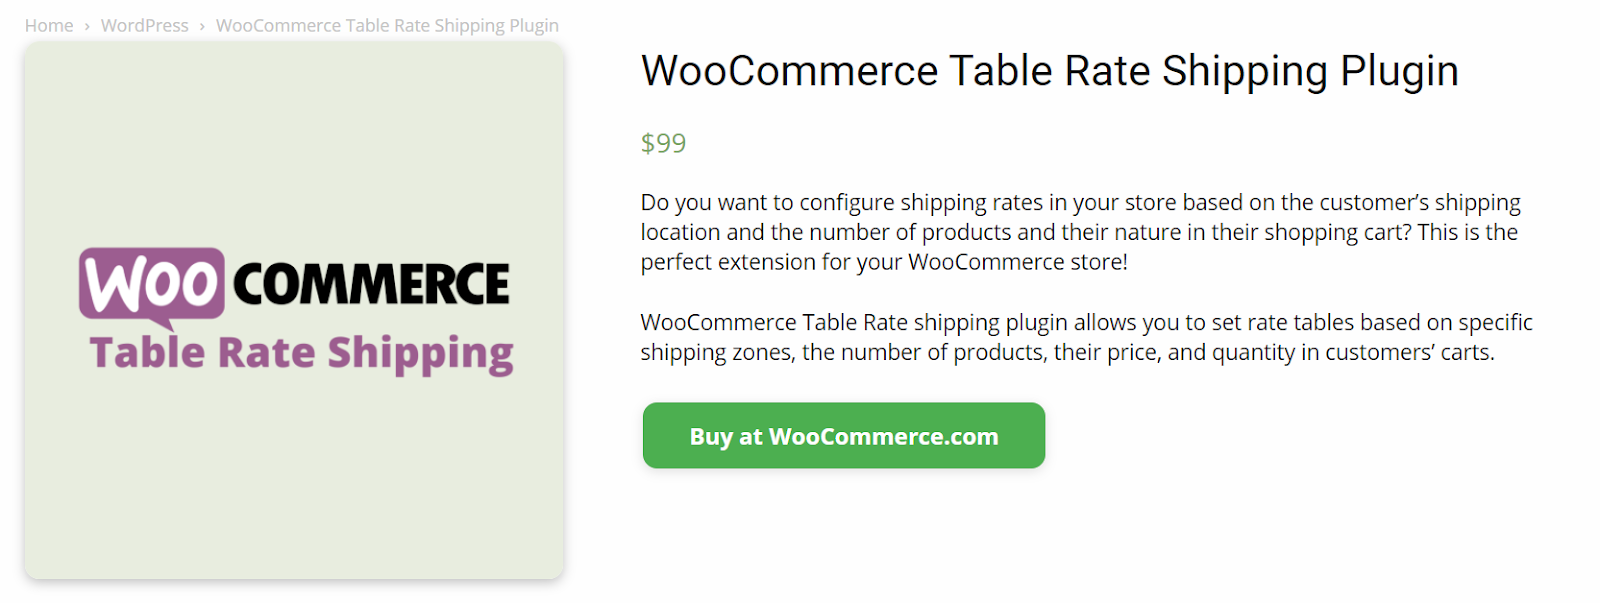 woocommerce table rate shipping plugin, woocommerce shipping plugins